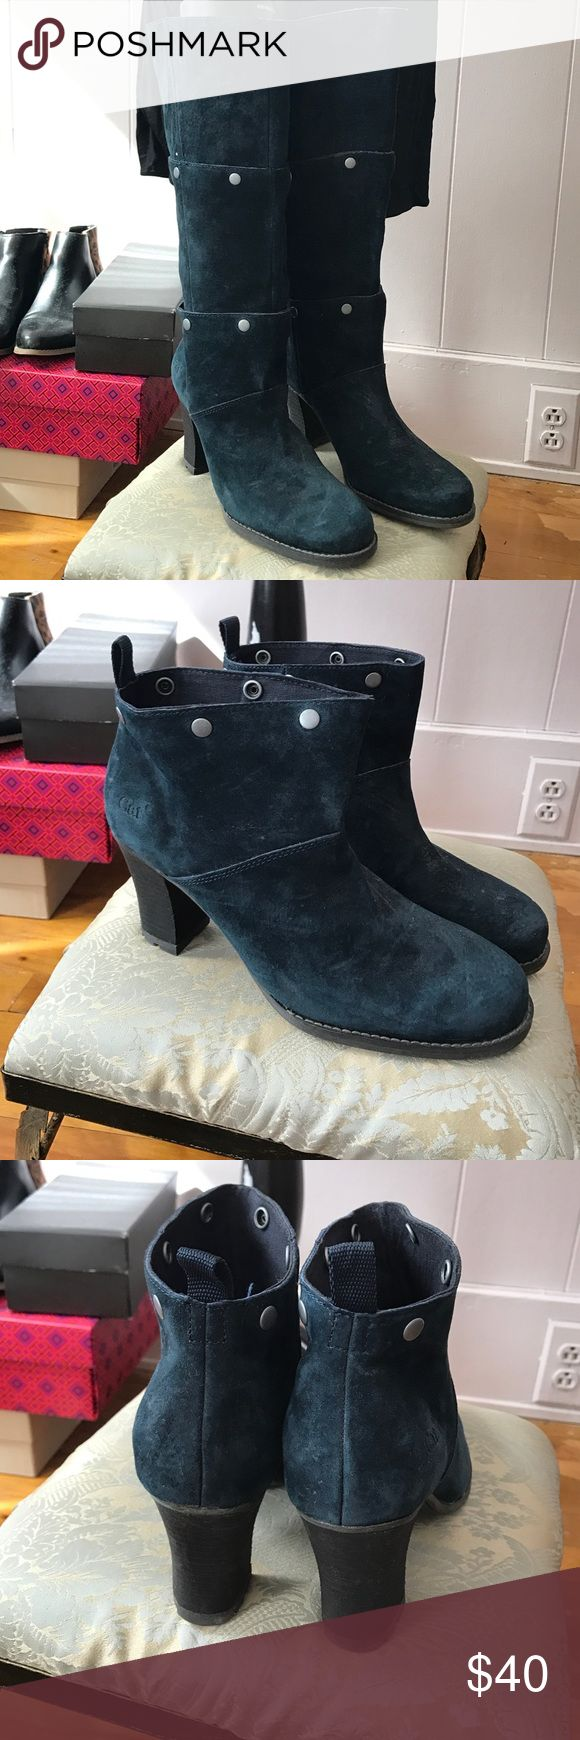 Blue suede CAT boots never worn These unique boots can be worn at 3 different lengths by unsnapping the buttons on each layer. They are very durable and have grips on the bottom for traction. Purchased from QVC during NYFW event and never worn. Heel height is 2 1/2 inches. Caterpillar Shoes Heeled Boots